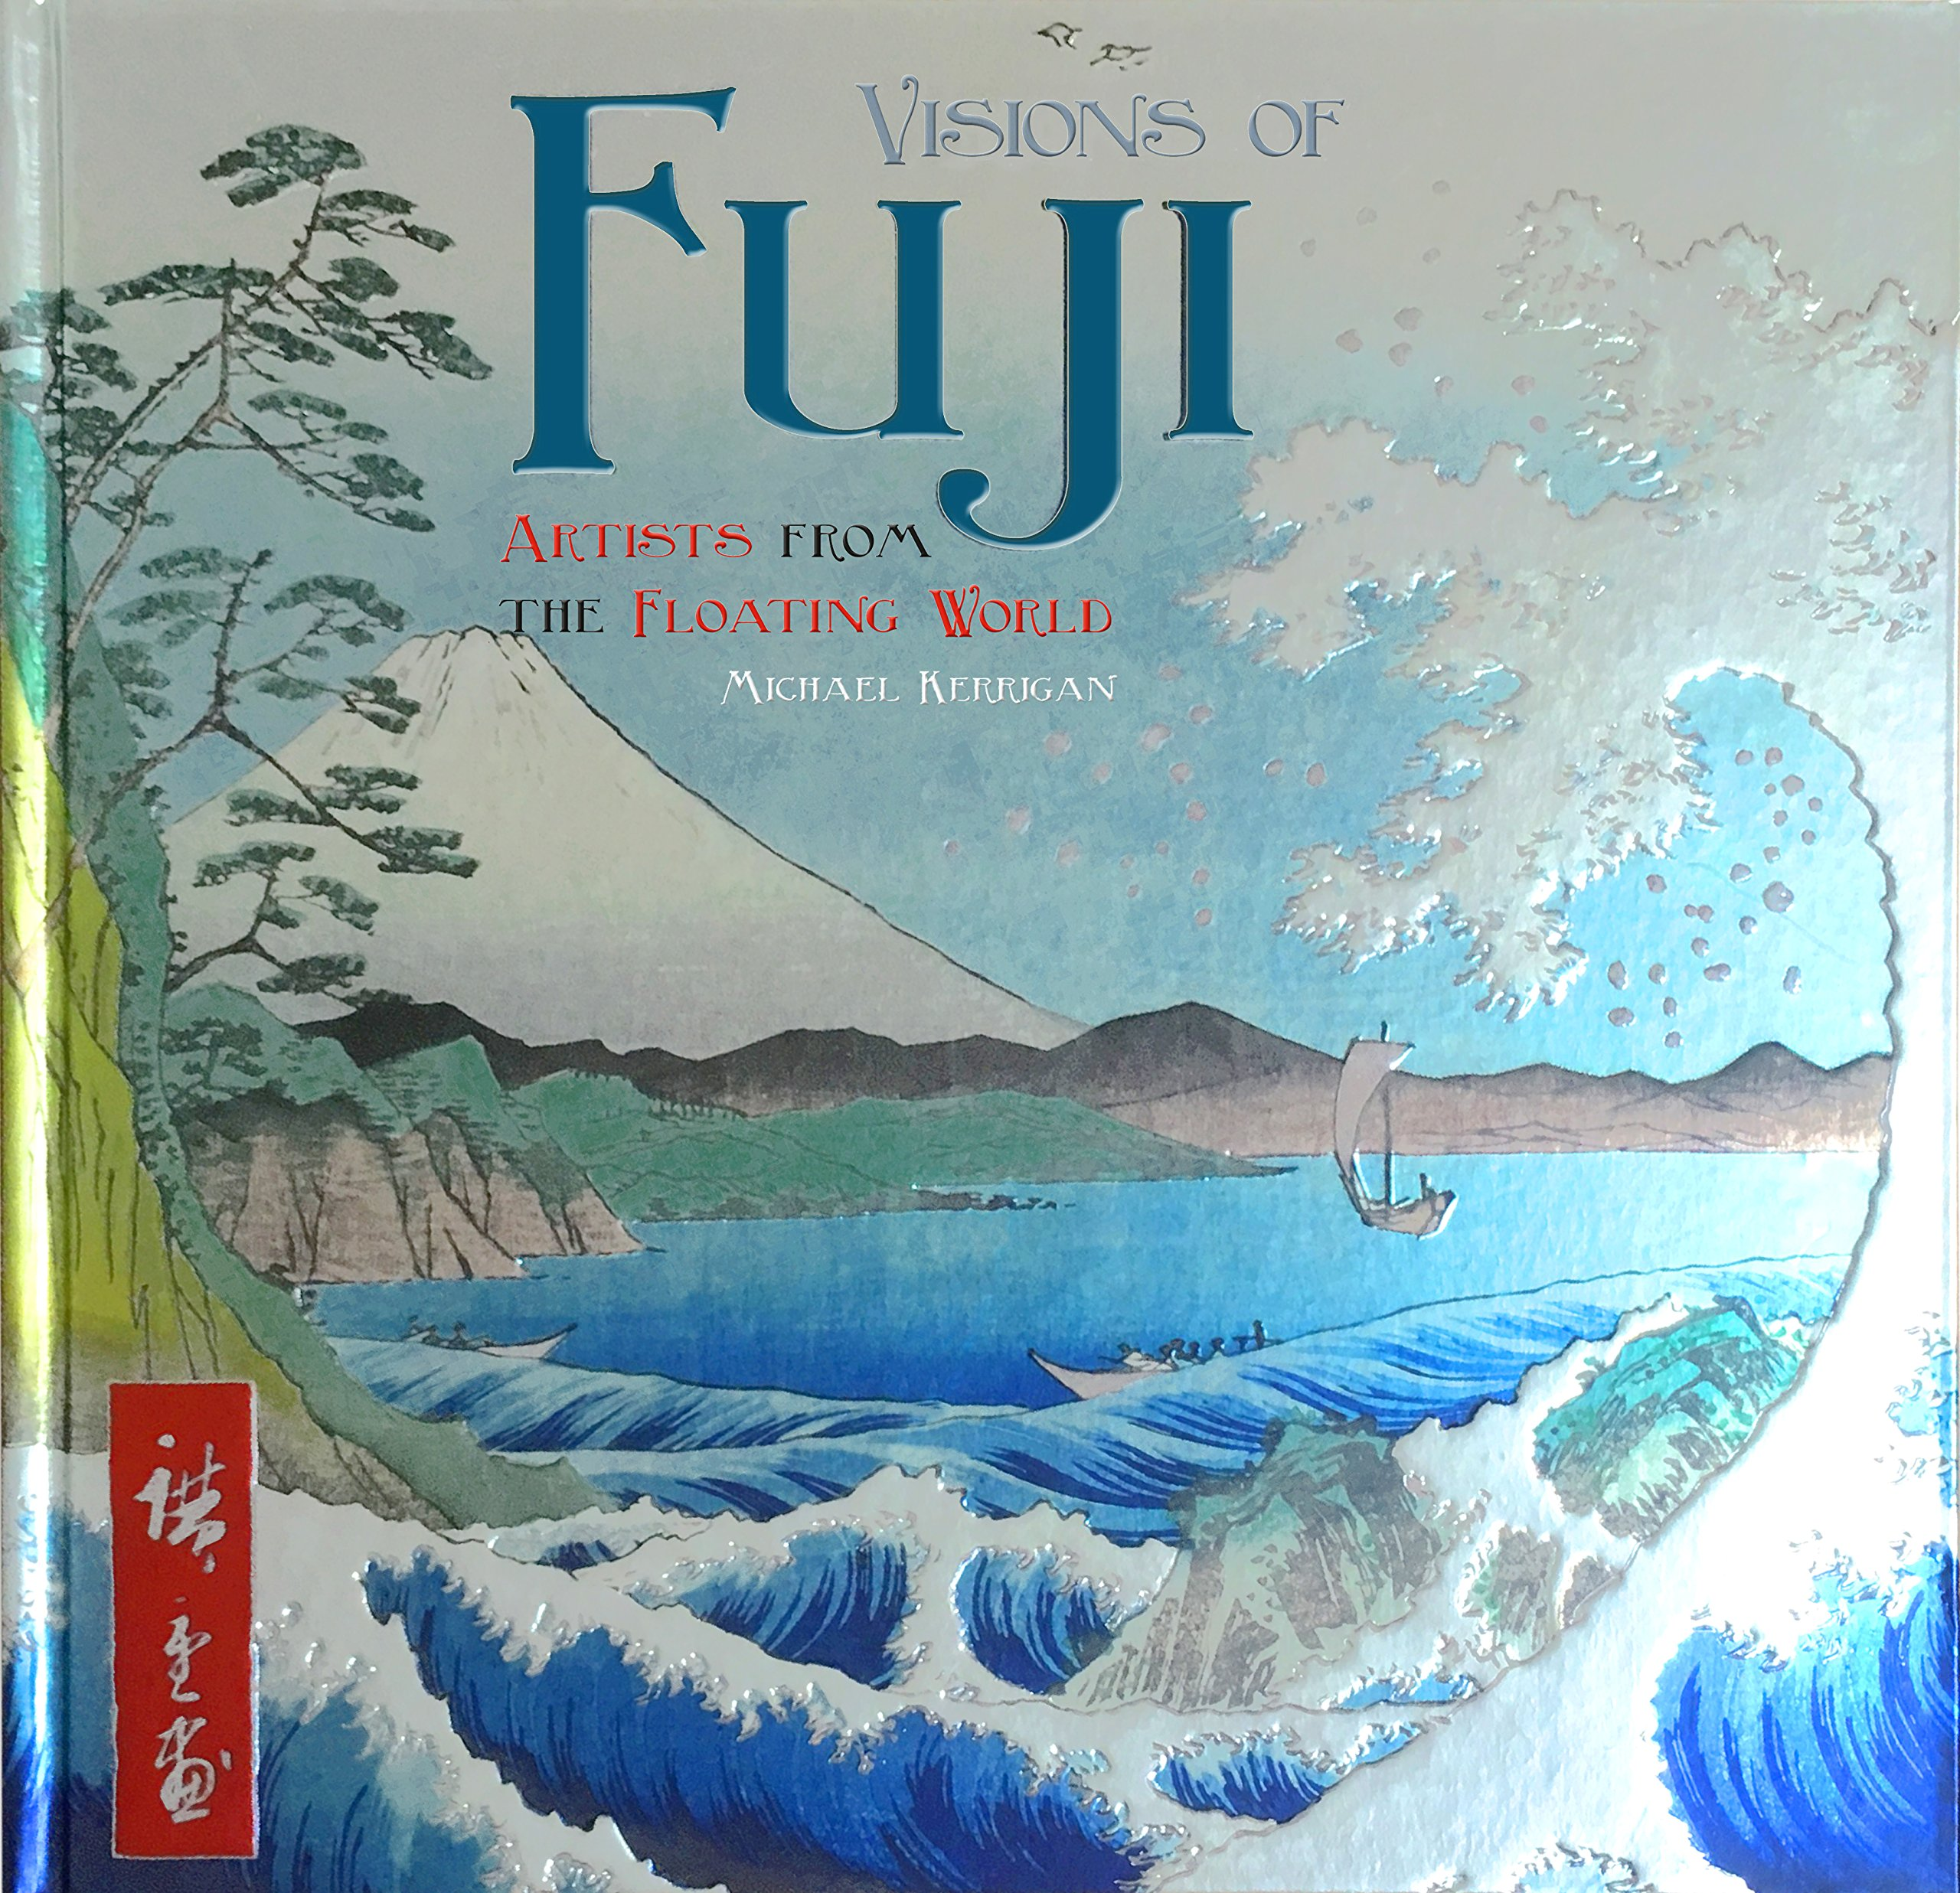 Visions of Fuji: Artists from the Floating World (Masterworks)